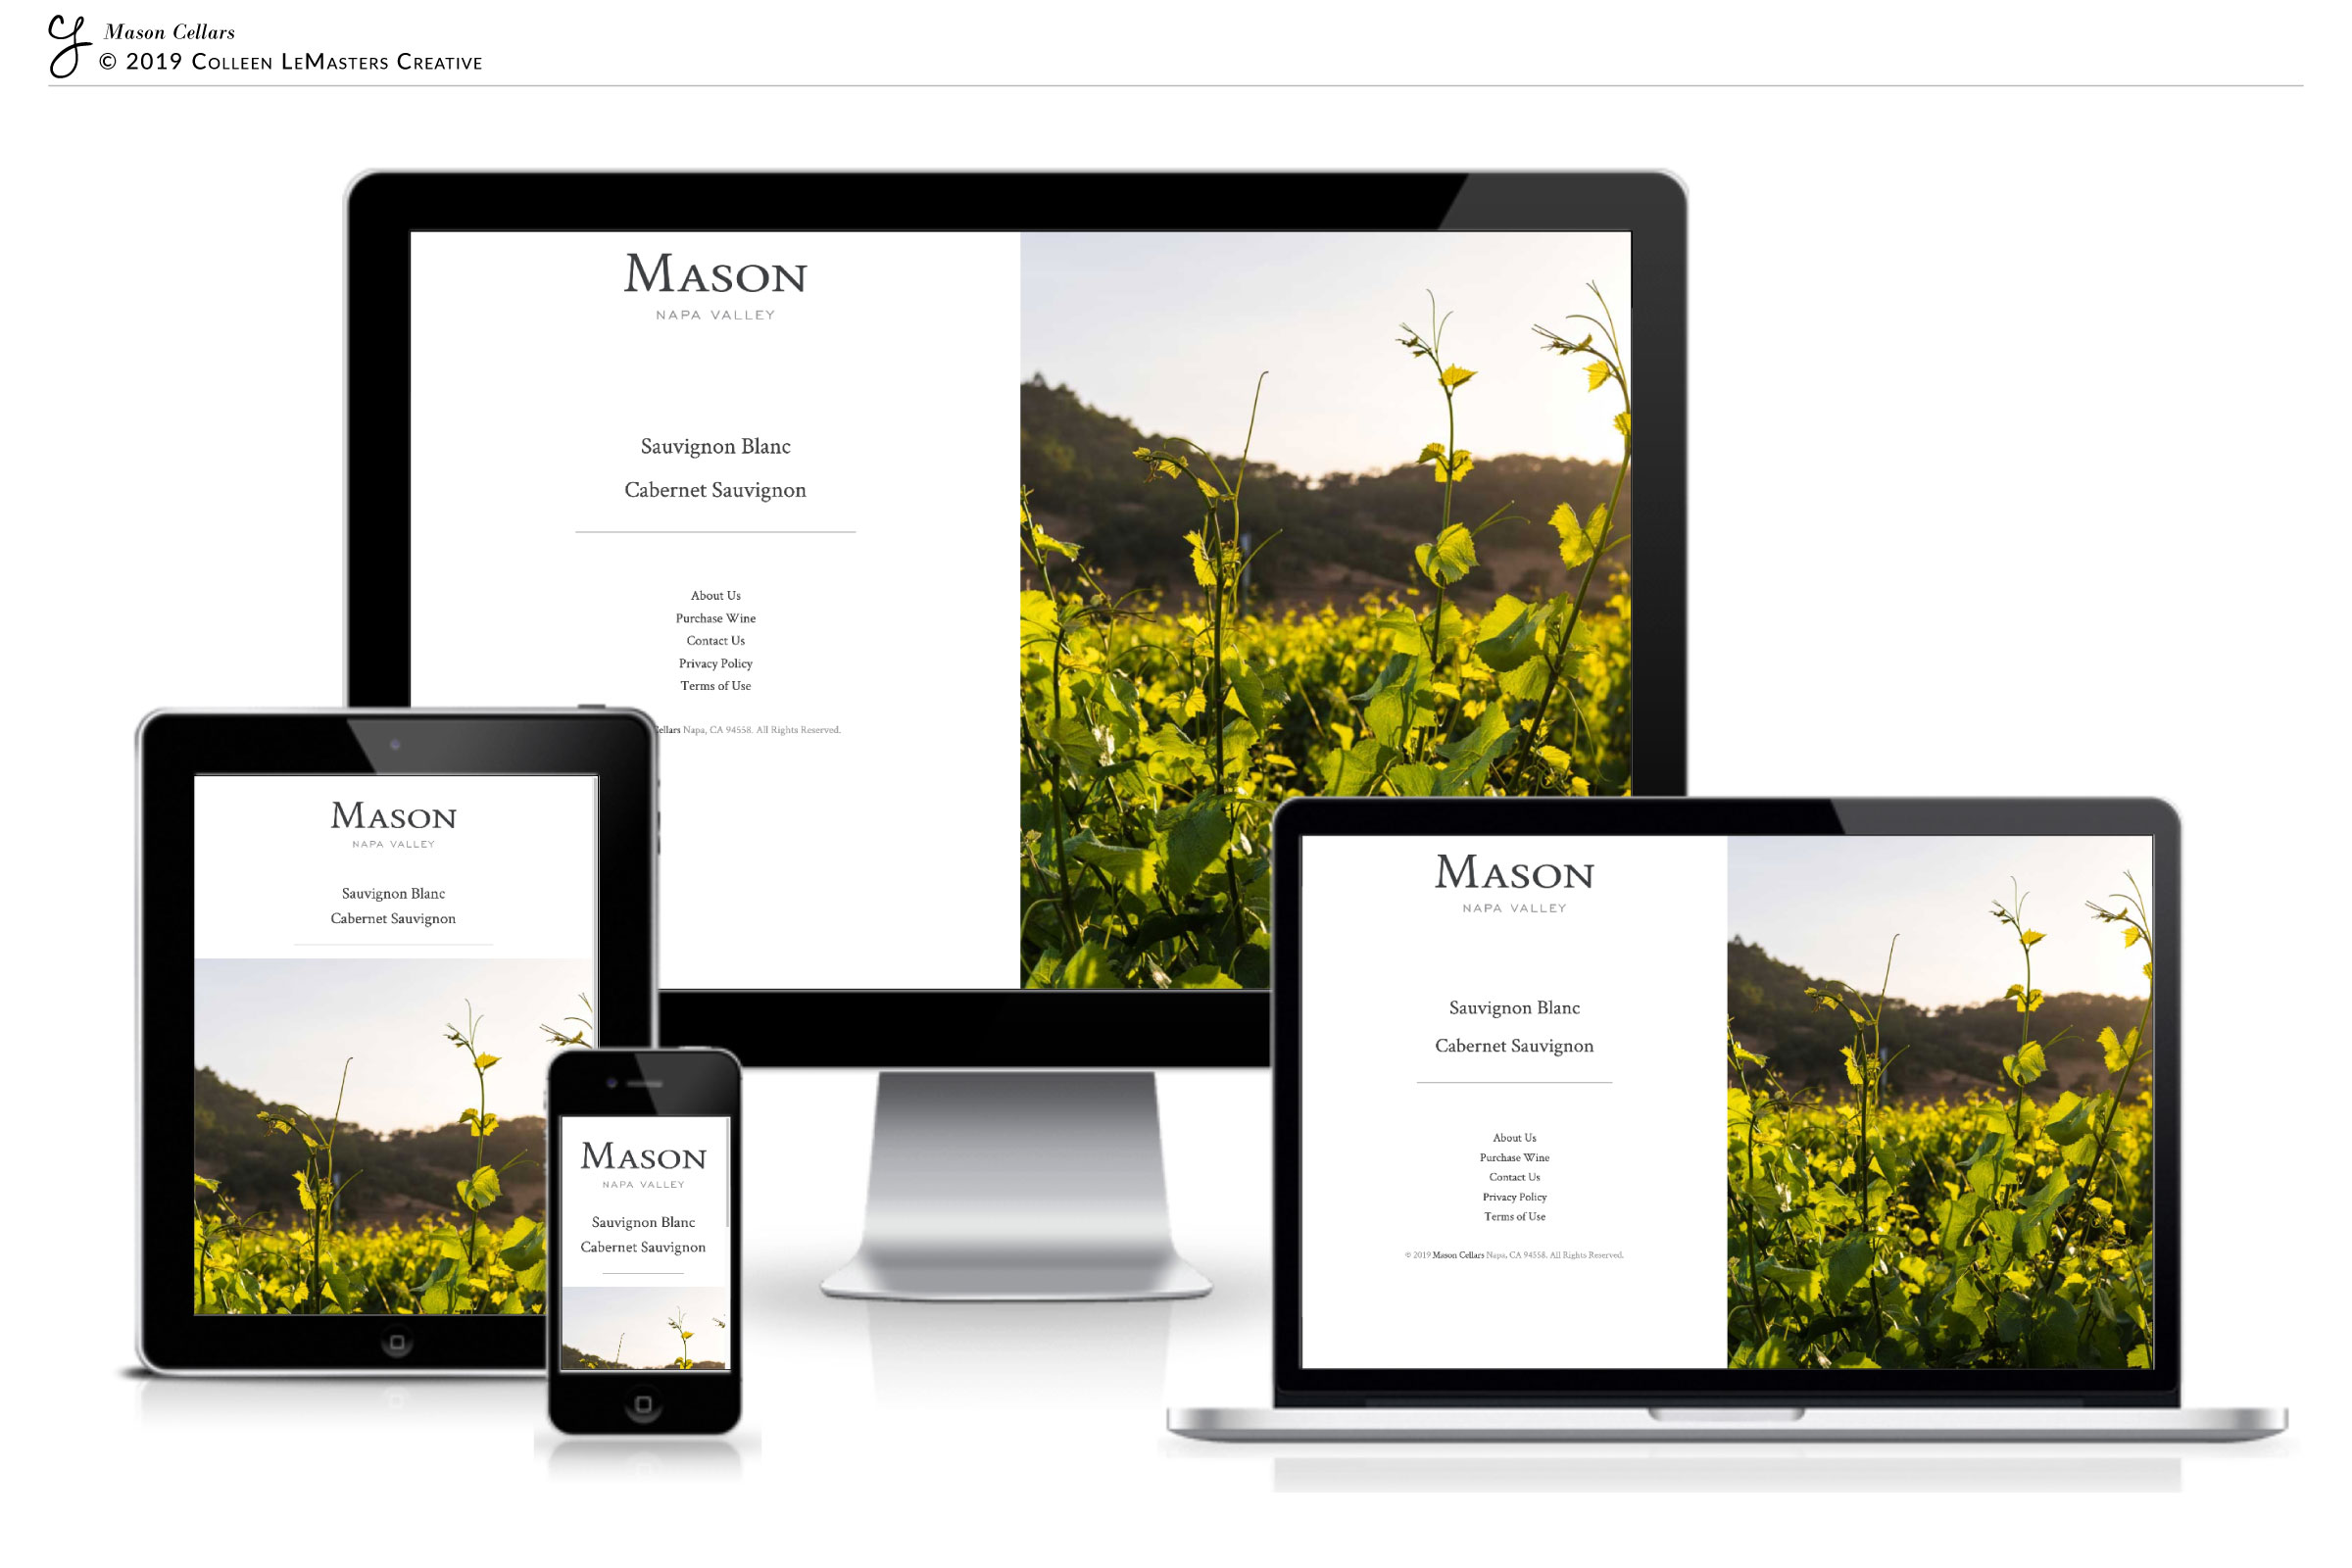 mason-cellars_clcreative-site